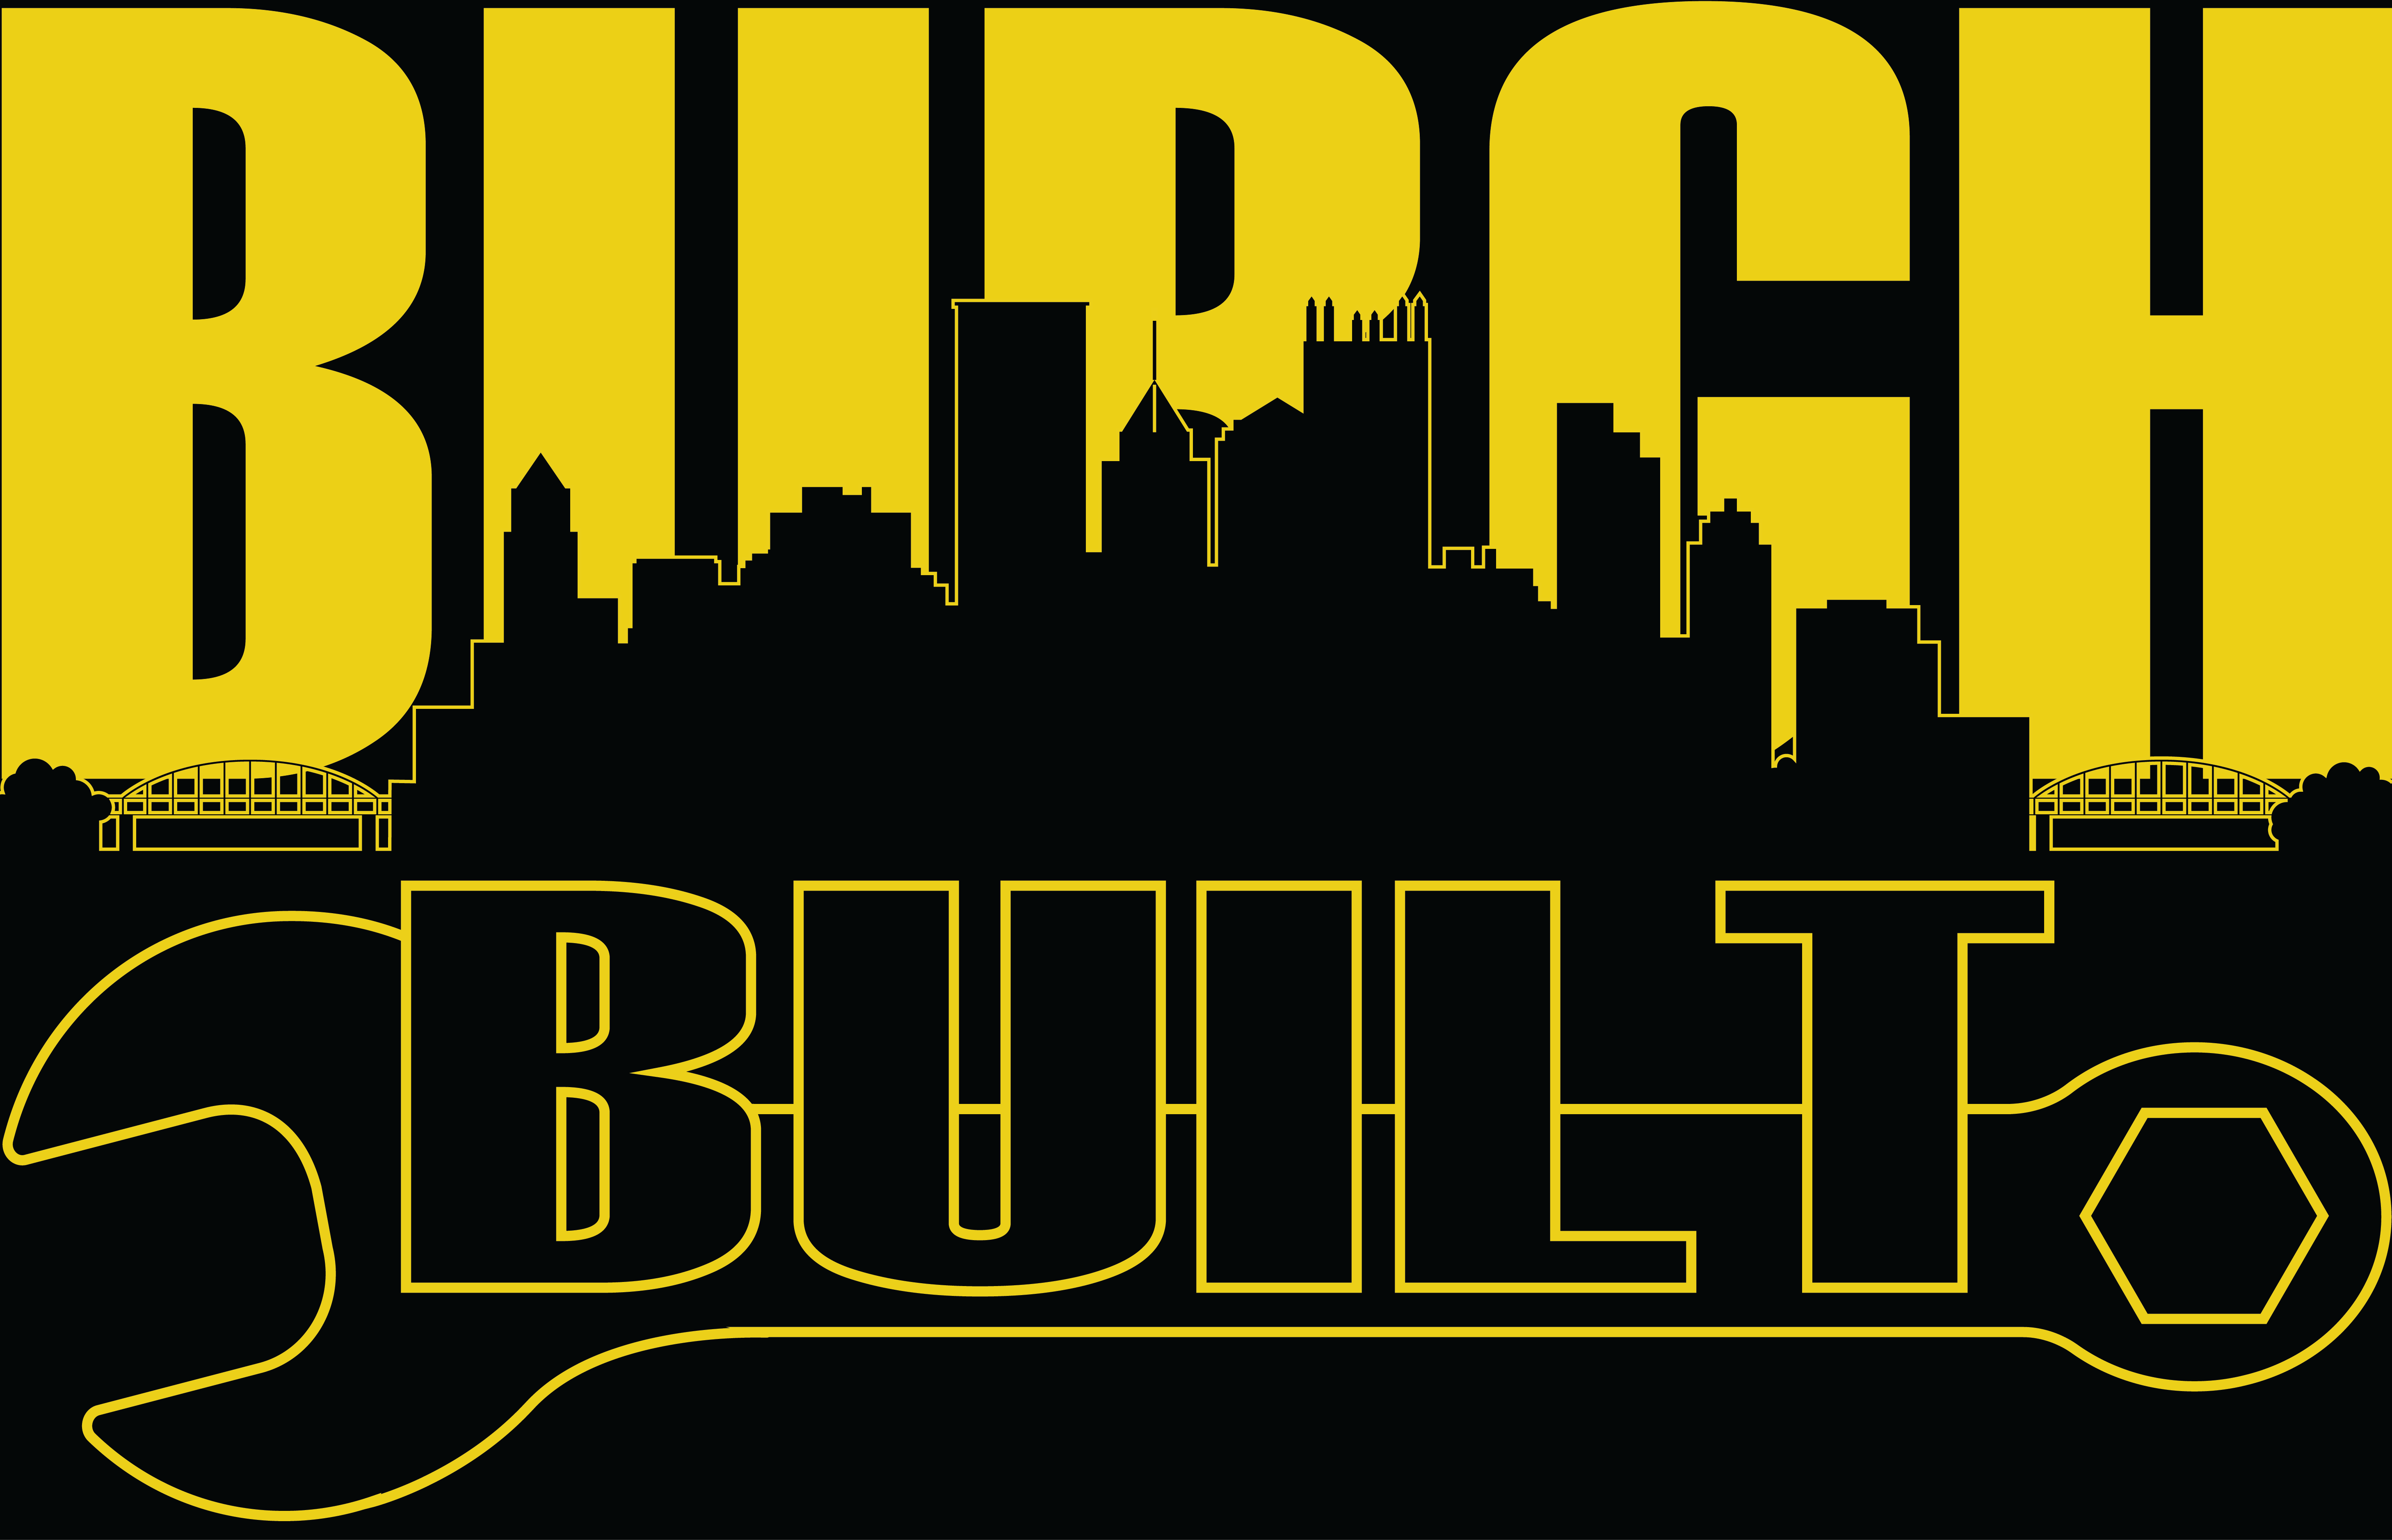 BurghBuilt Shirt Design